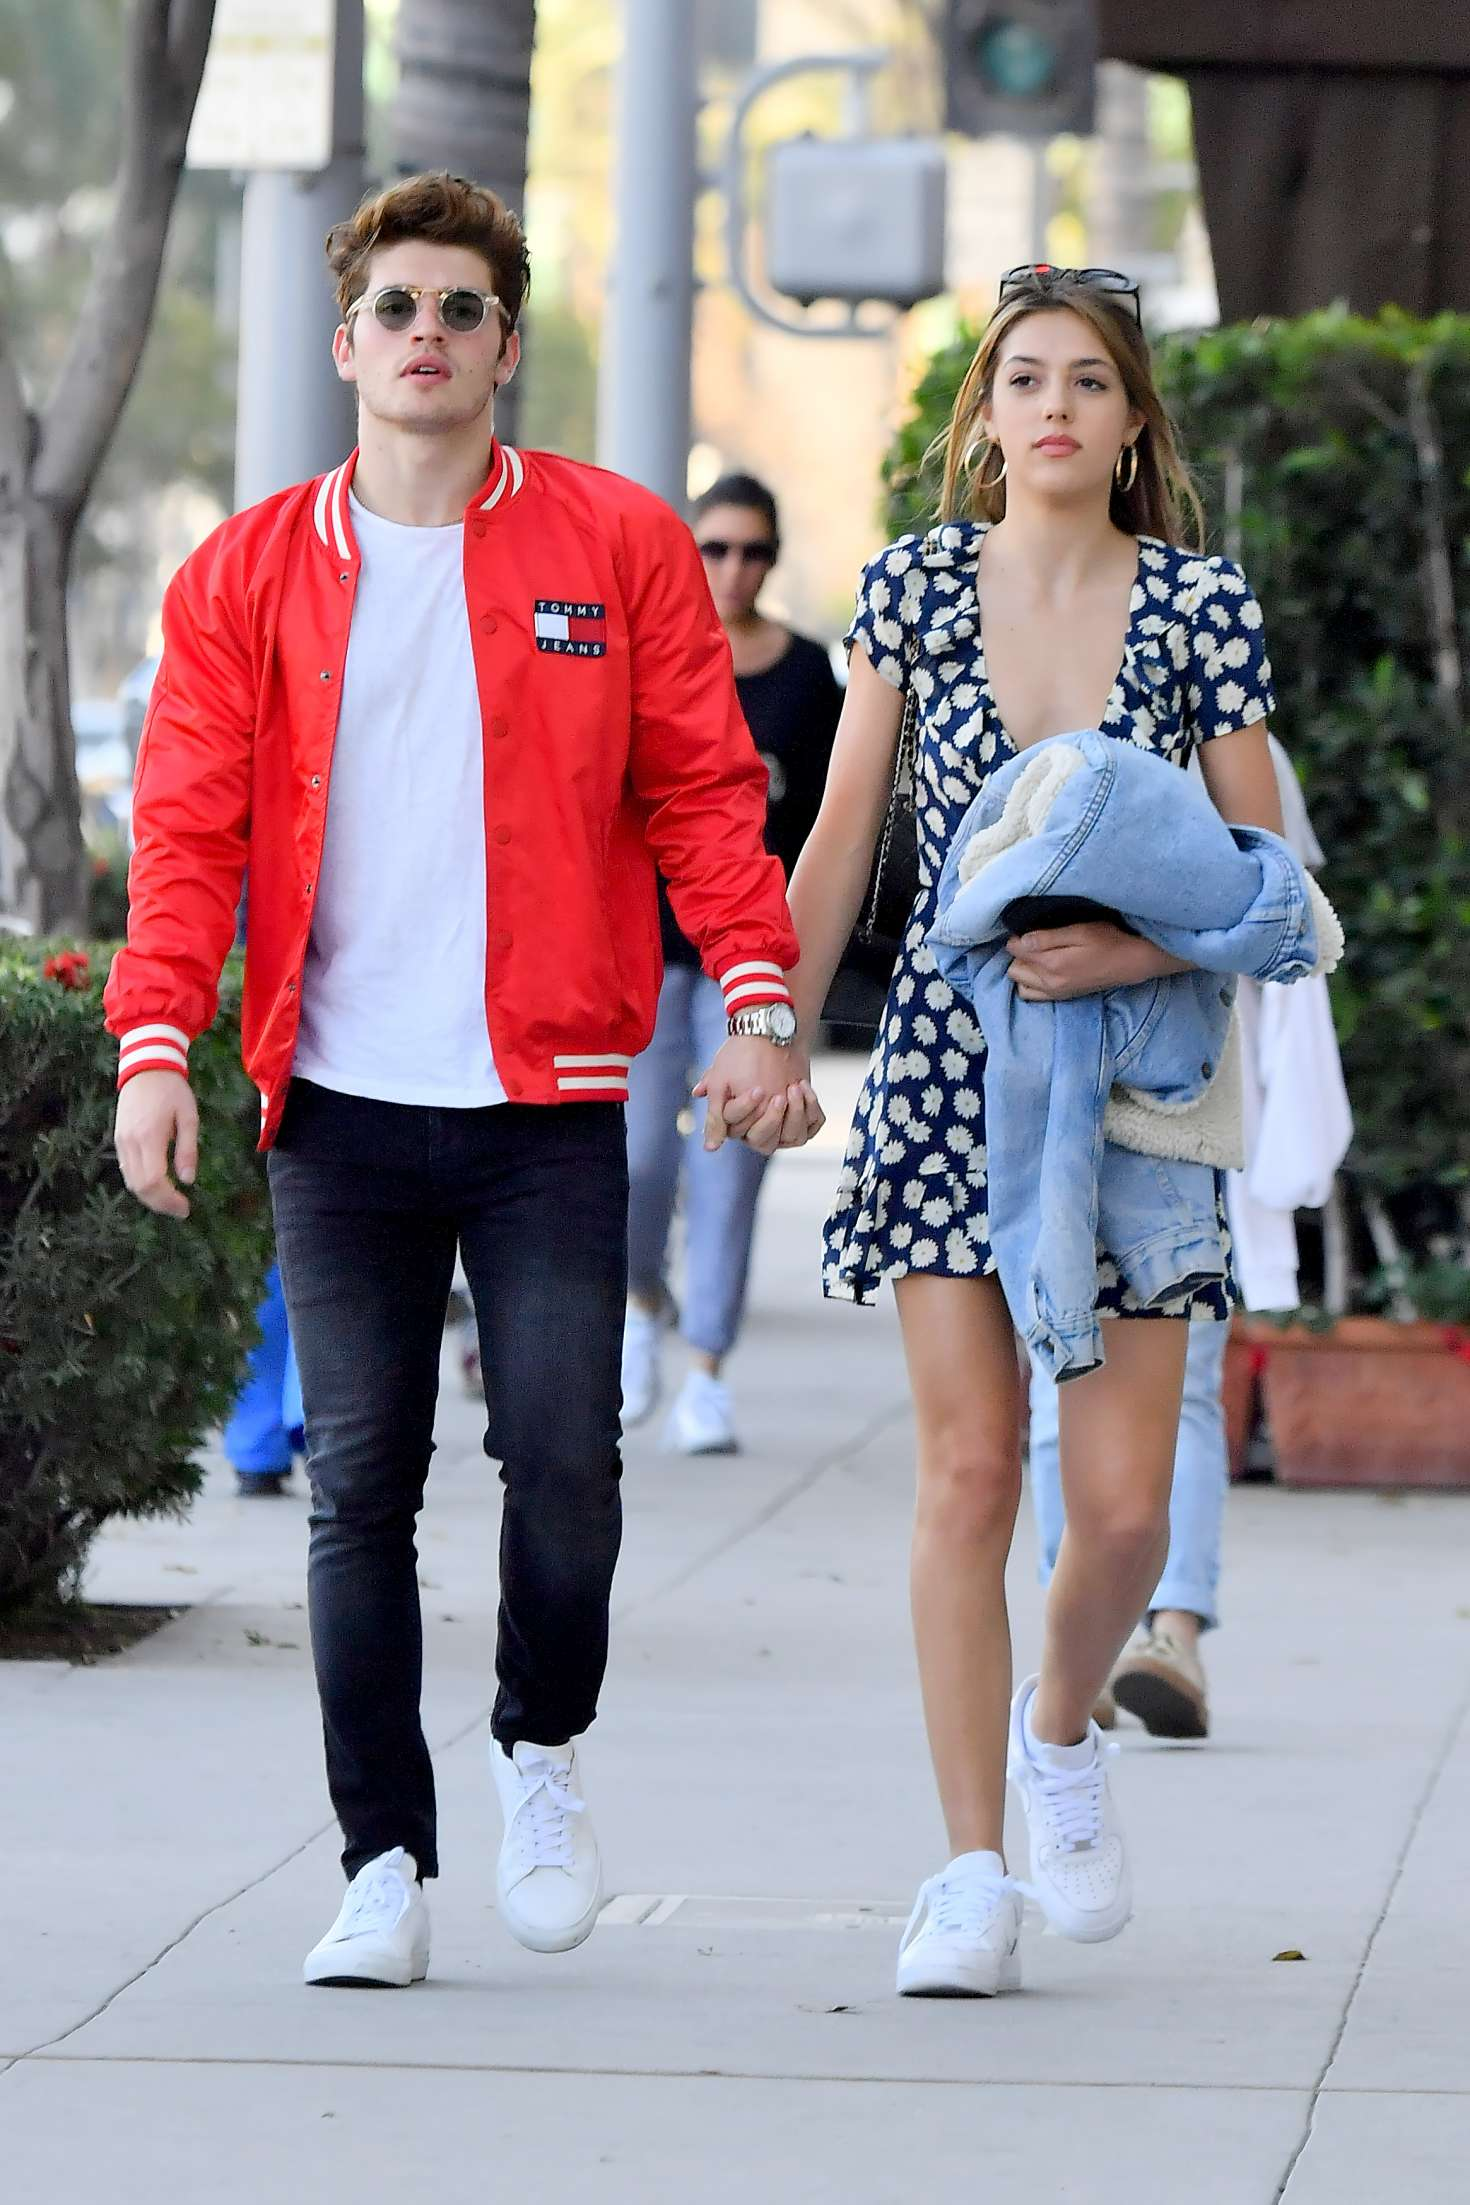 Mercedes Benz Of Westwood >> Sistine Stallone and Gregg Sulkin – Holding hands as they ...